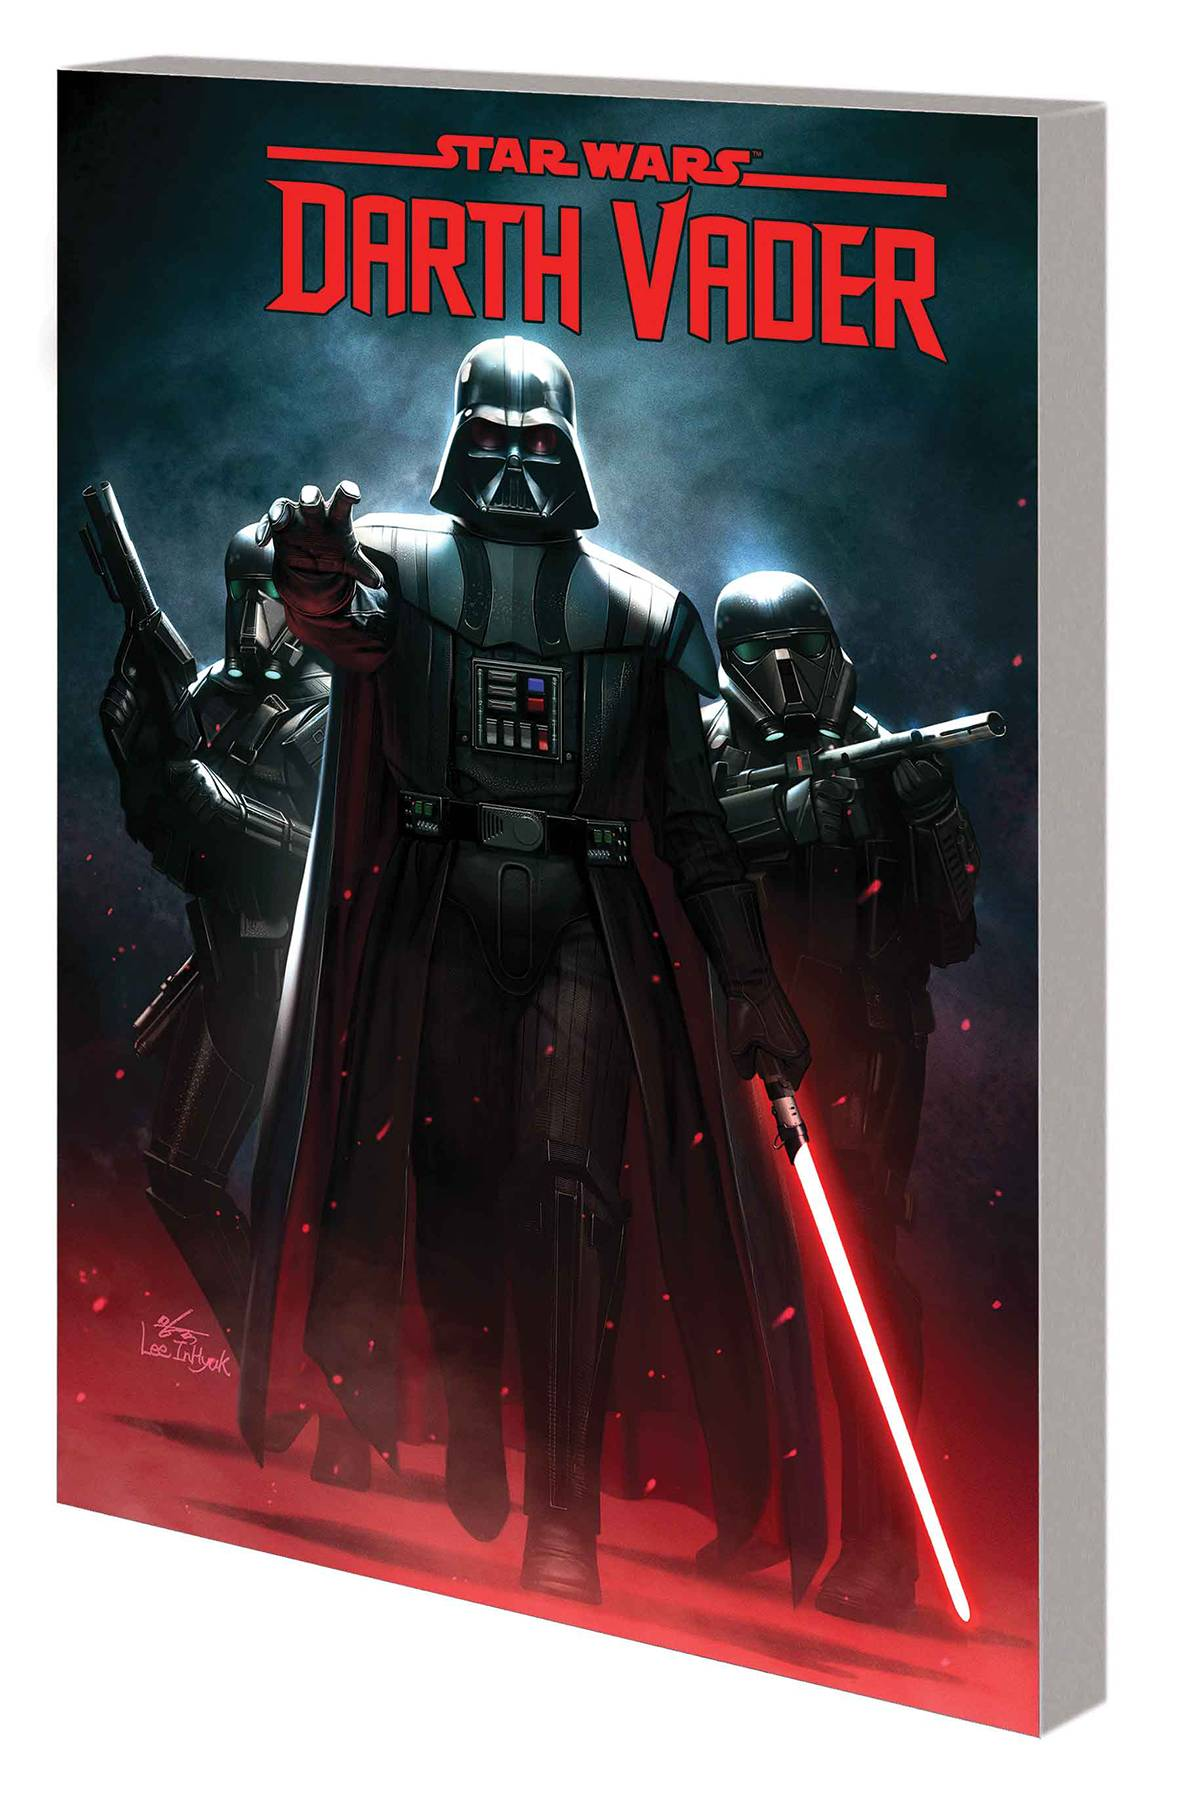 STAR WARS DARTH VADER BY GREG PAK TP 01 DARK HEART OF SITH